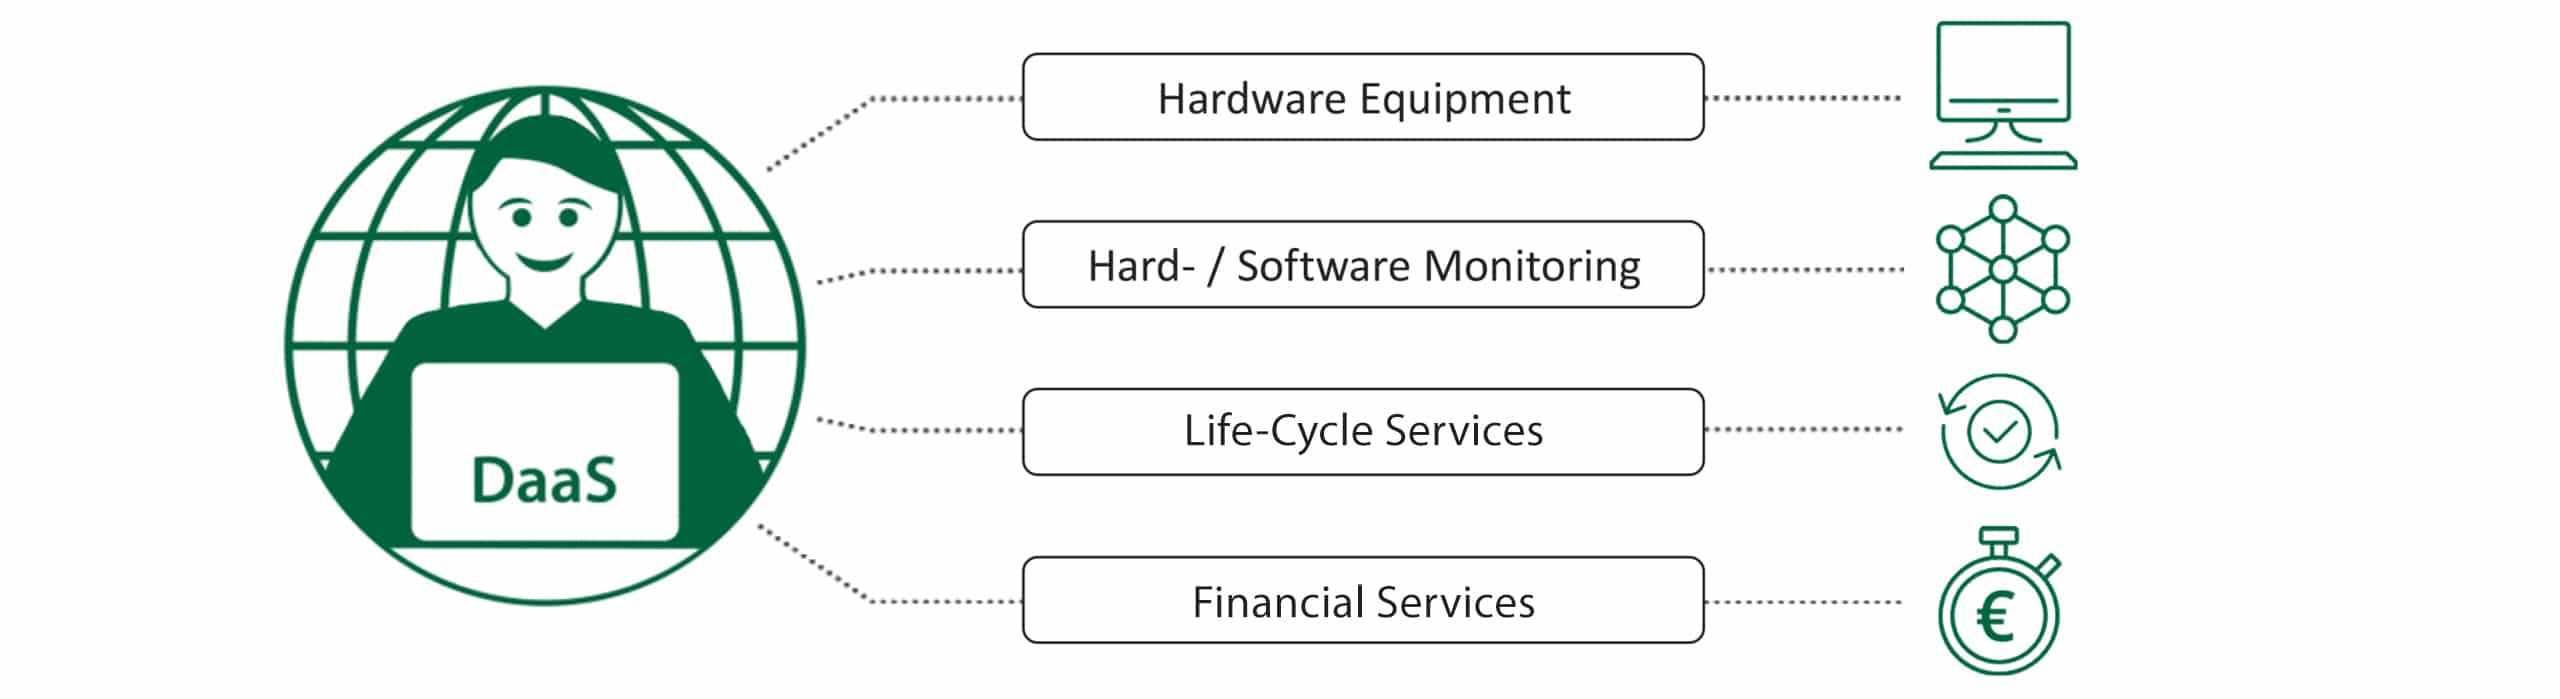 Device as a Service (DaaS) – Einer für alles - Hardware, Support, proaktives Management und Services